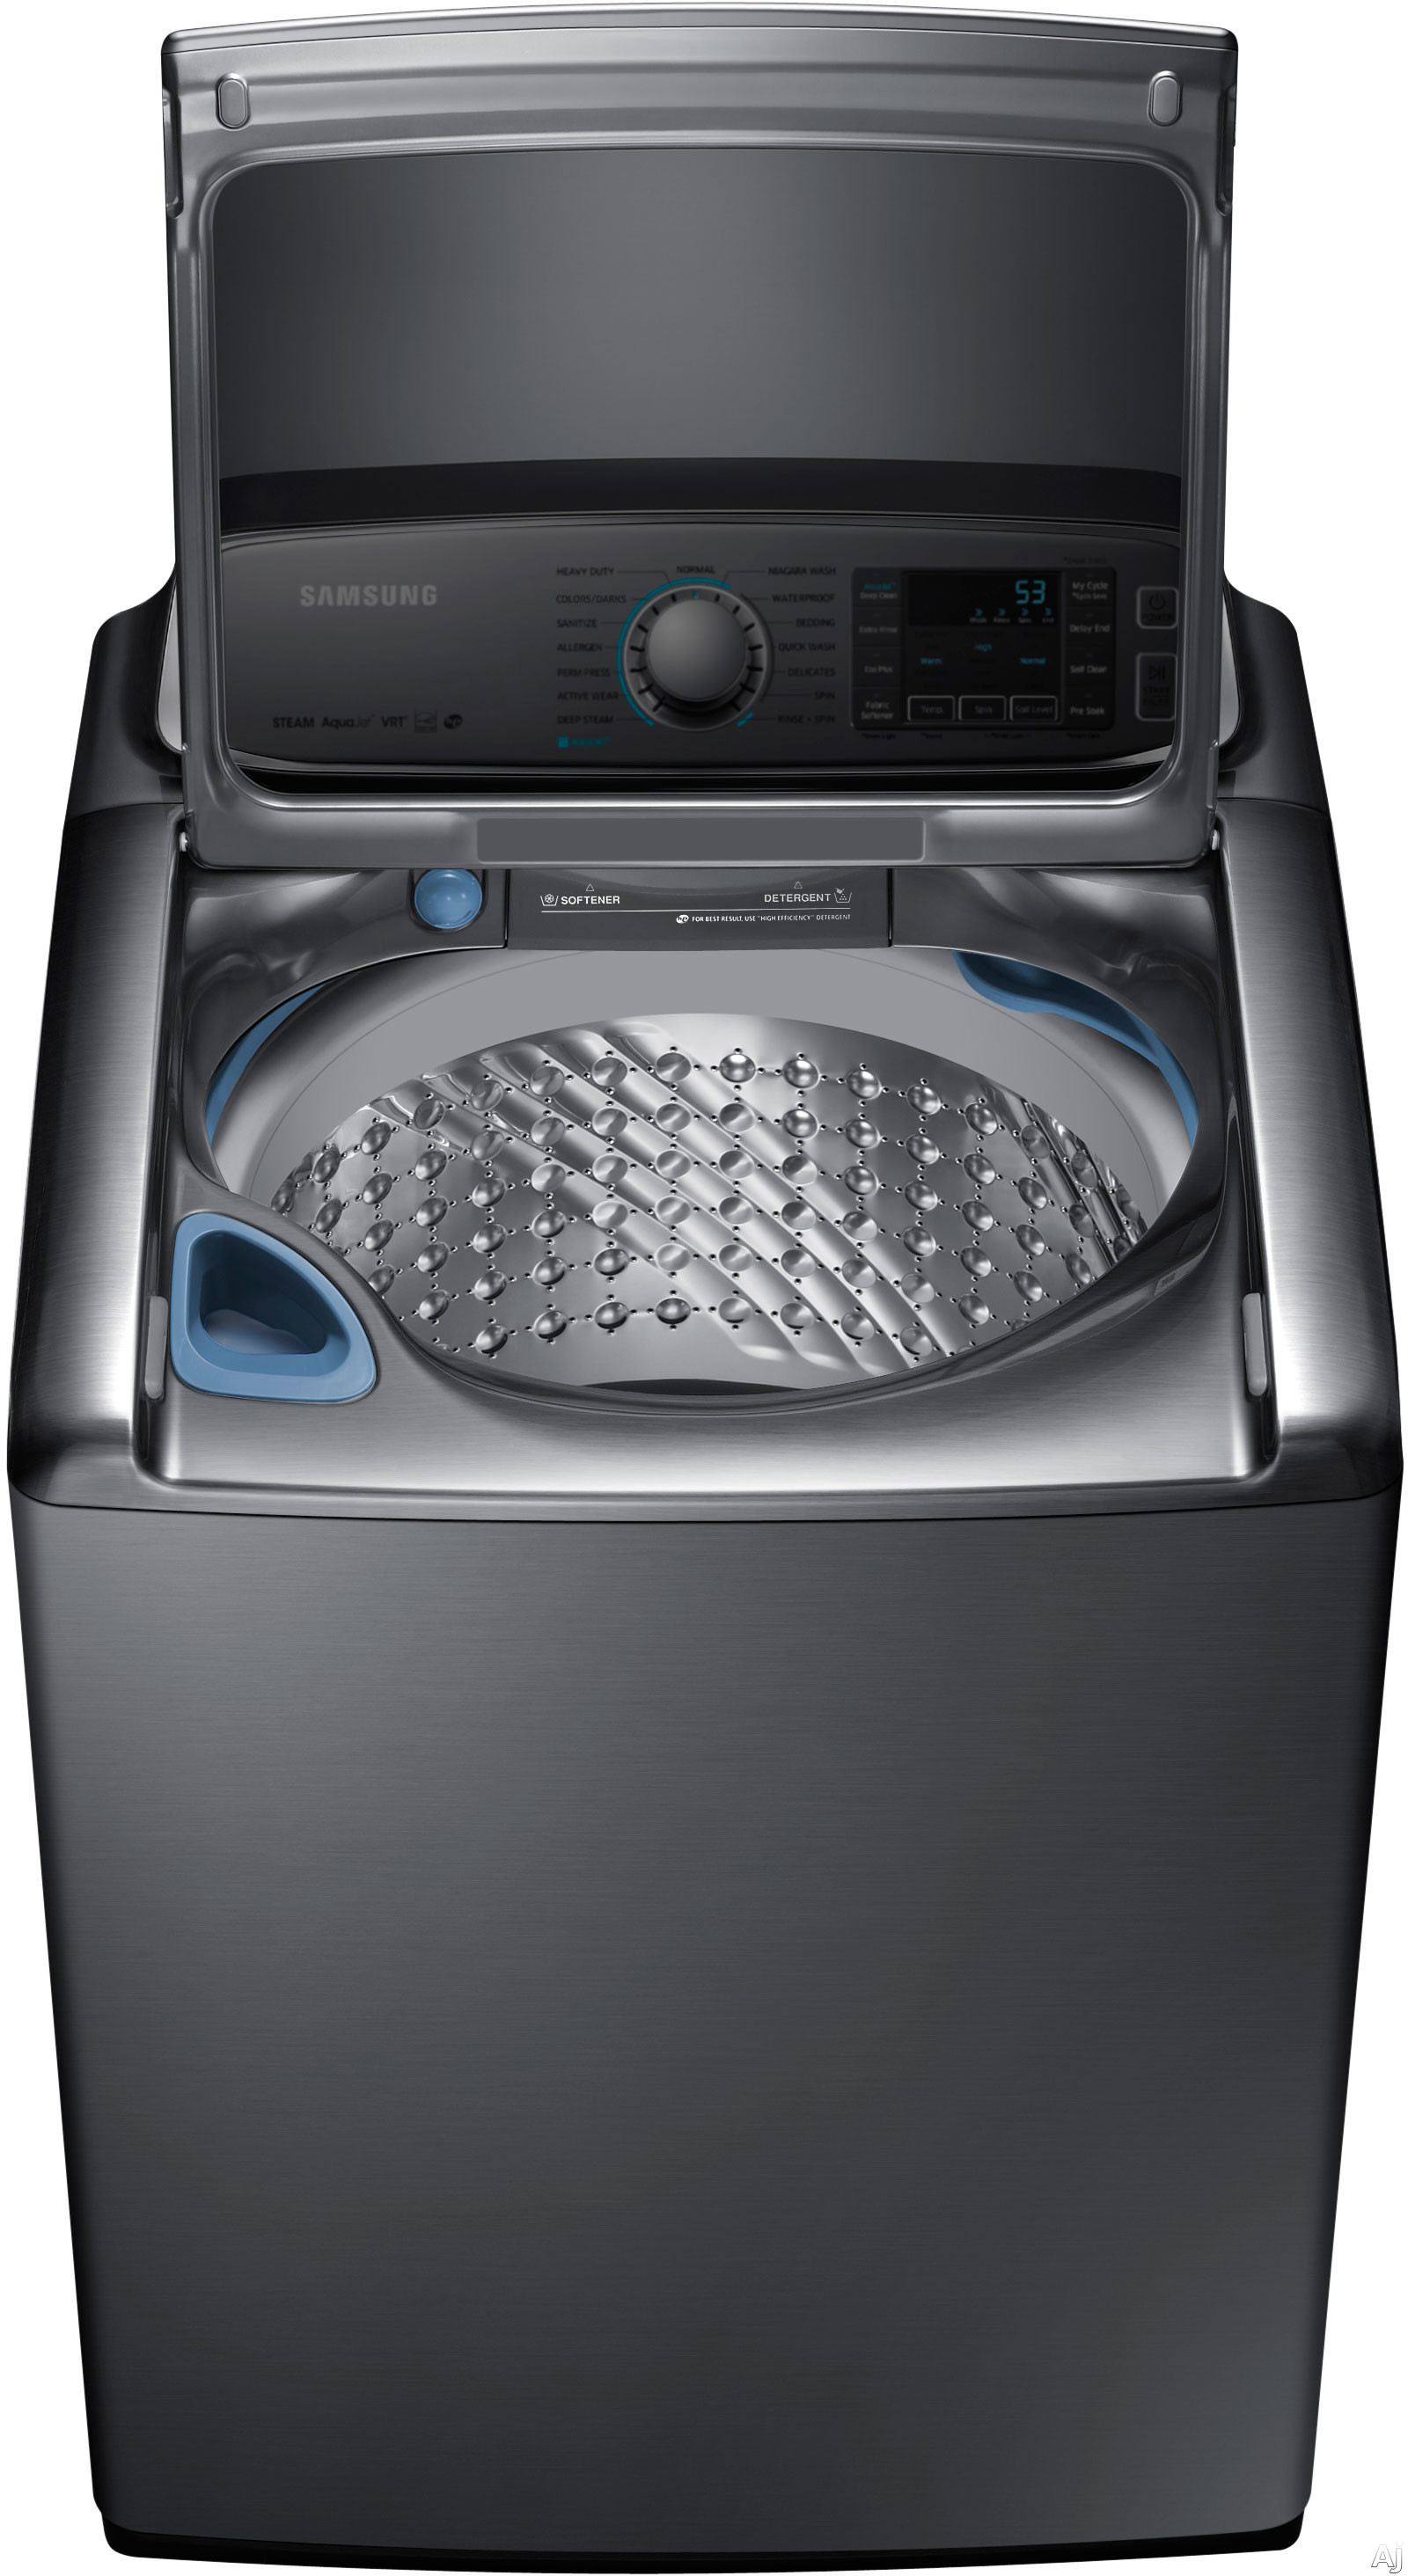 Samsung Wa56h9000a 30 Quot 5 6 Cu Ft Top Load Washer With 15